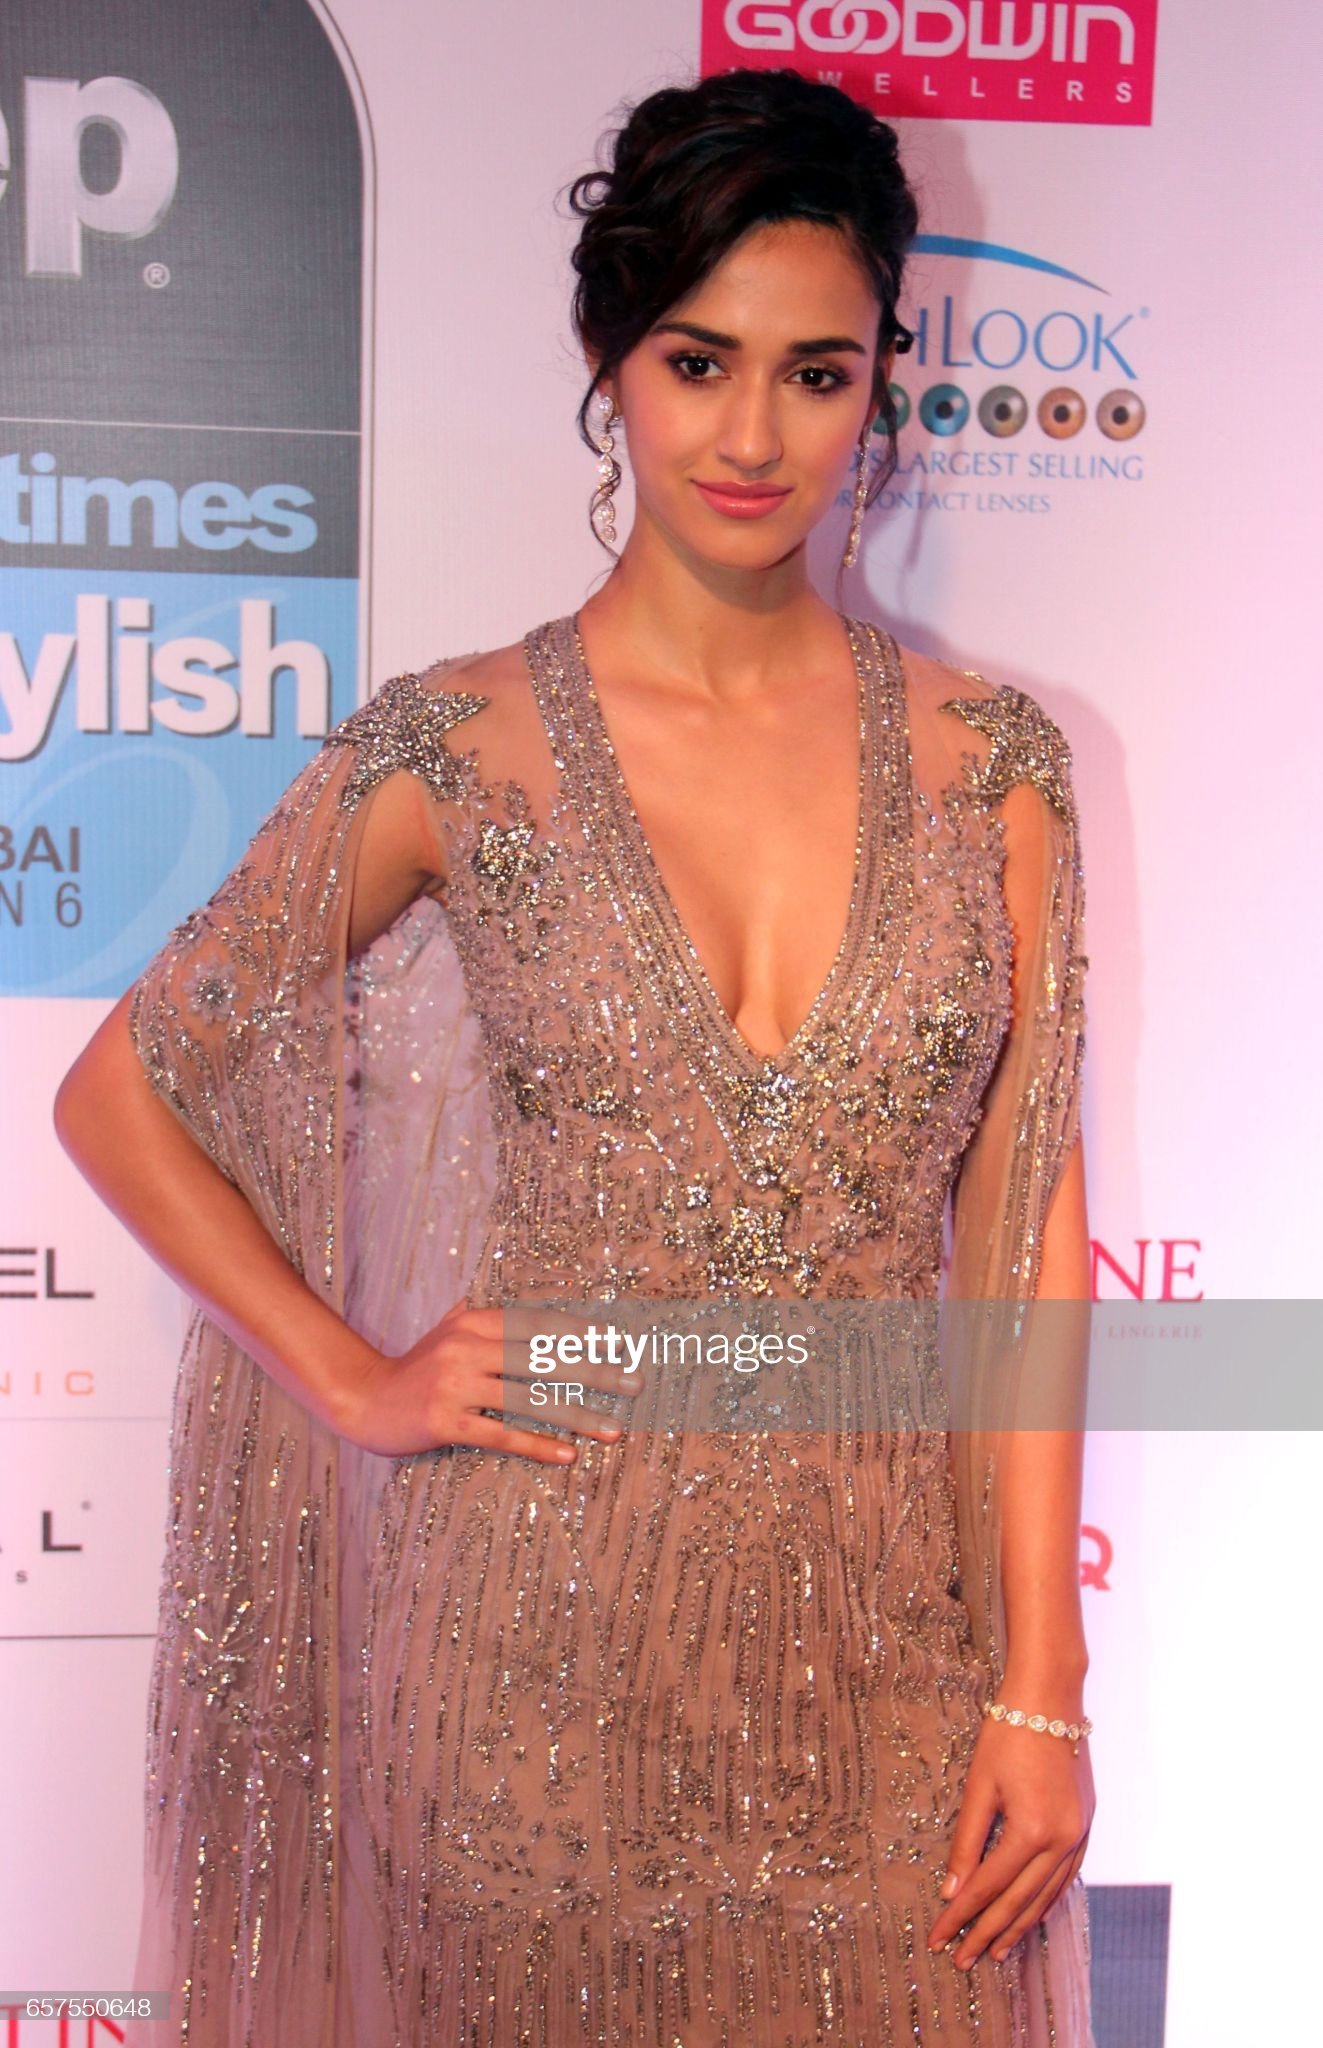 indian-bollywood-actress-disha-patani-poses-as-she-attends-the-ht-picture-id657550648